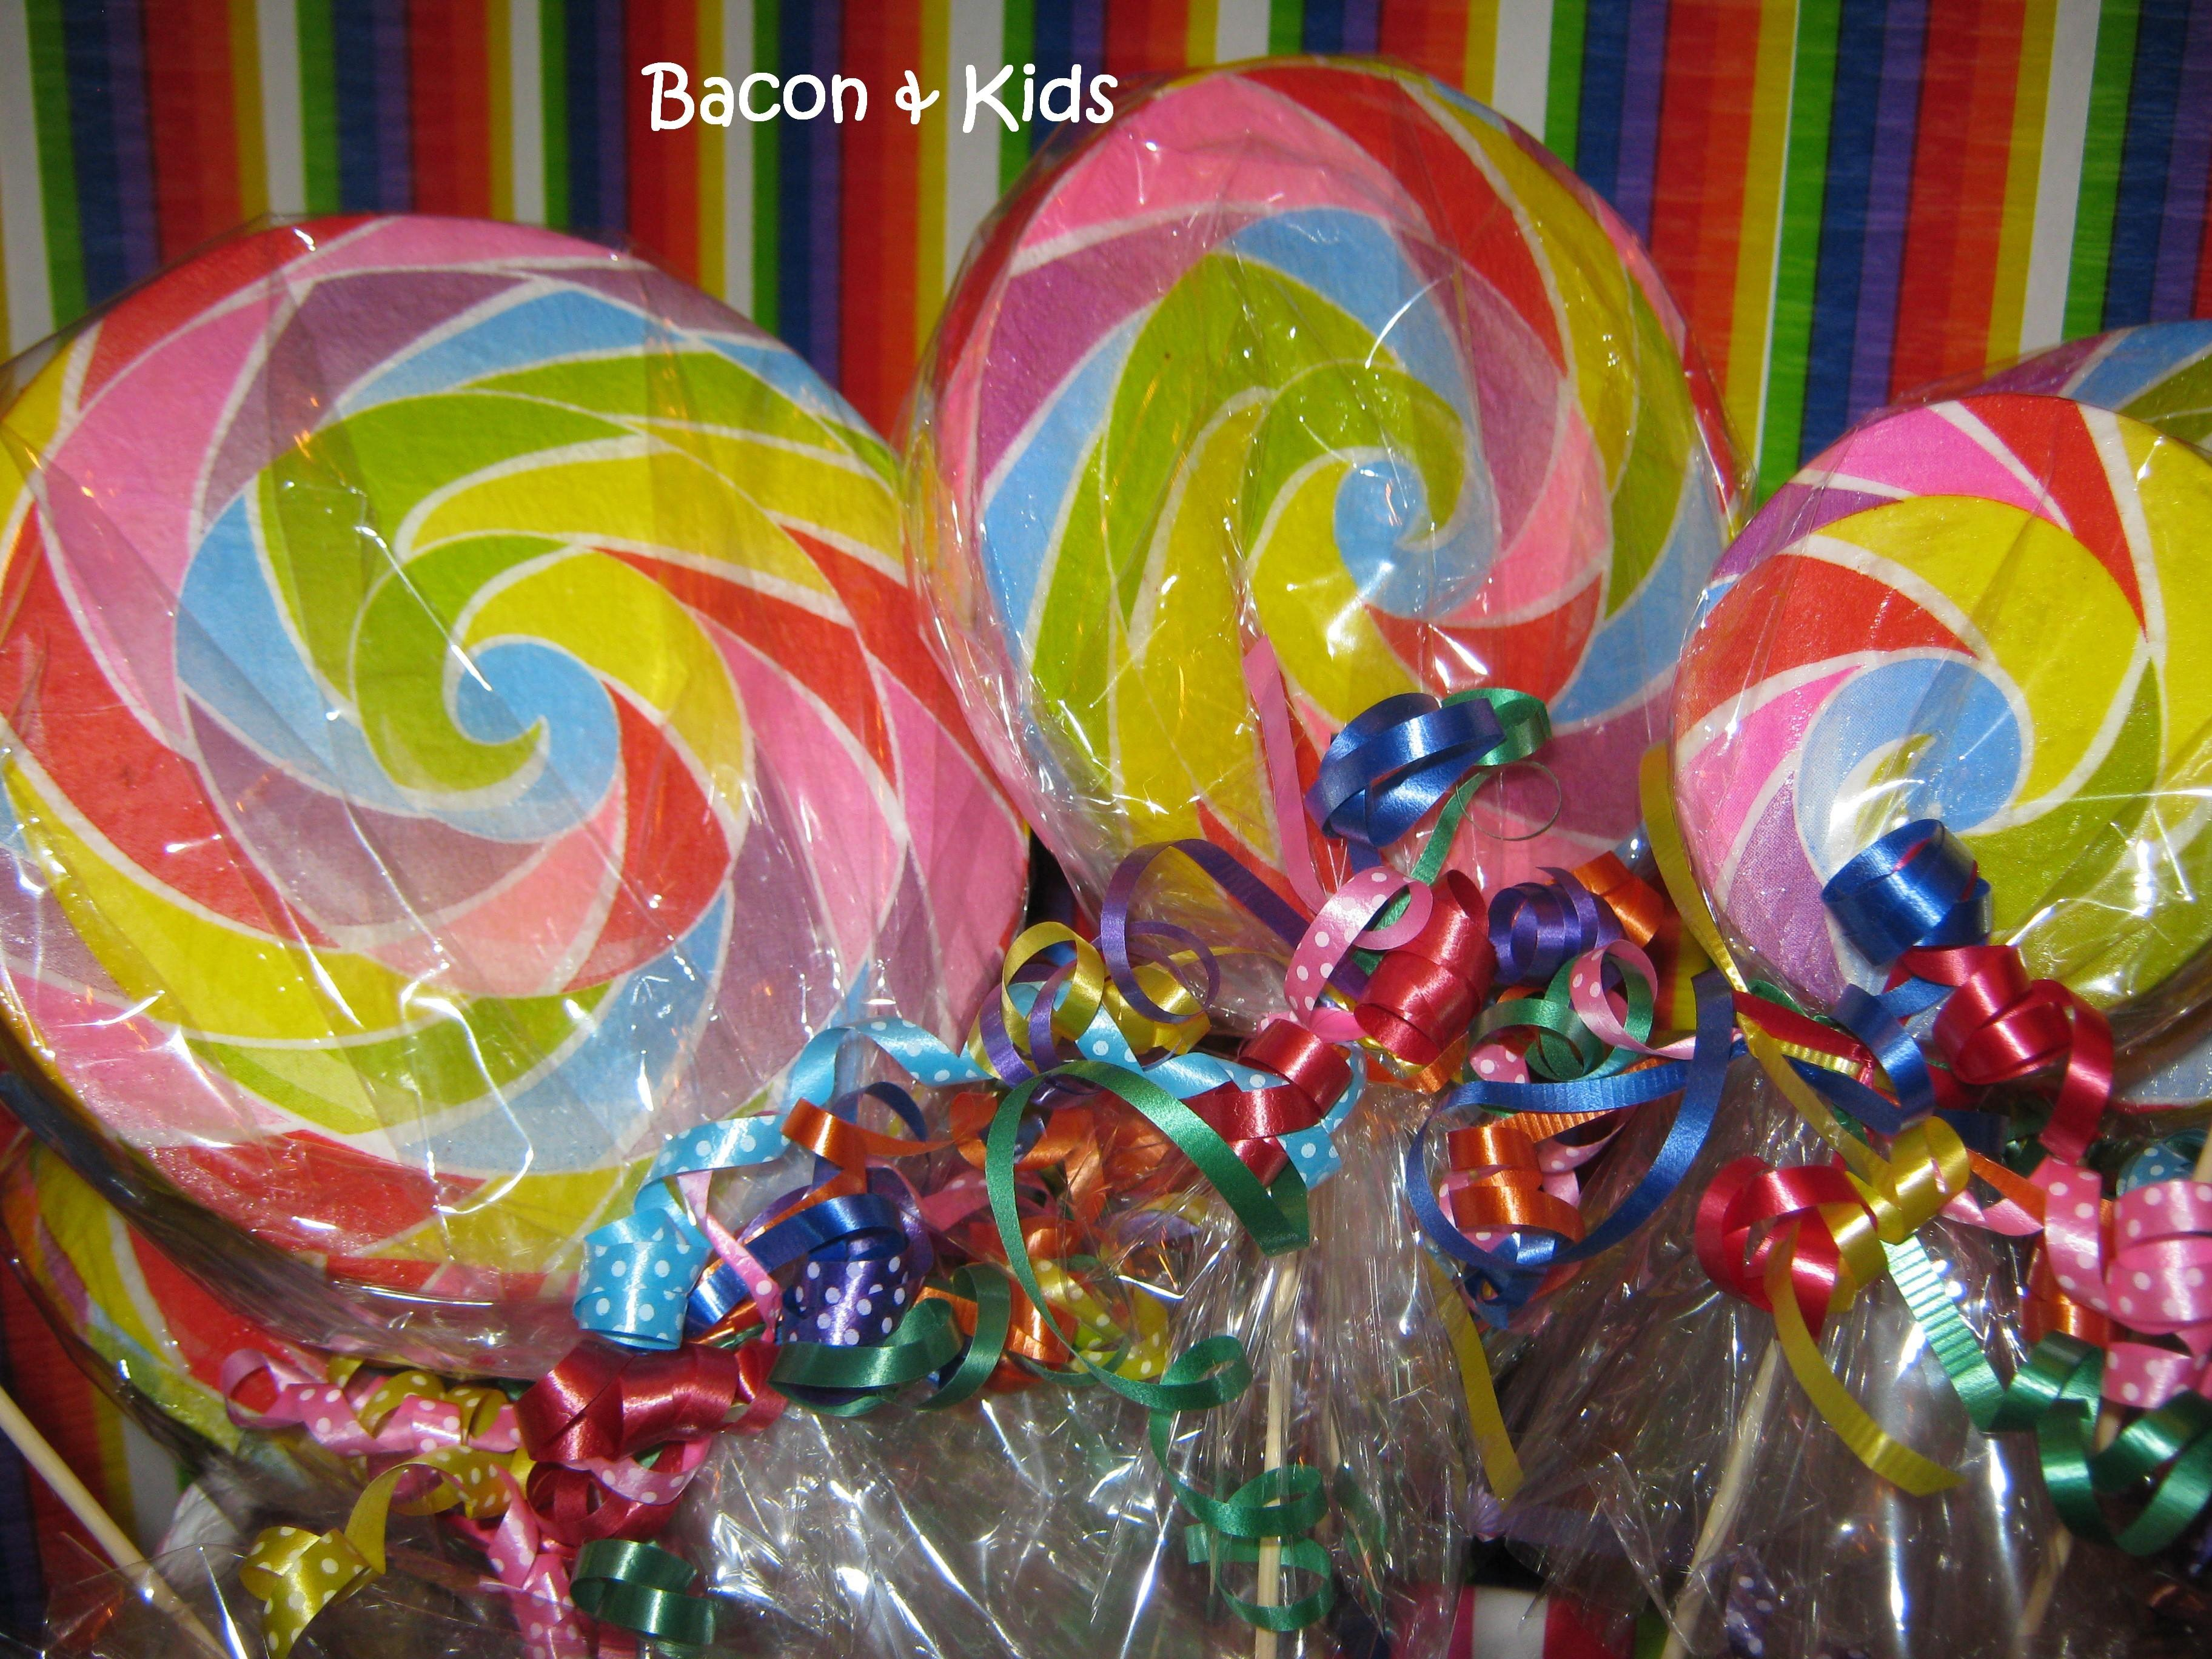 Candy Party Making Decorations Bacon Kids